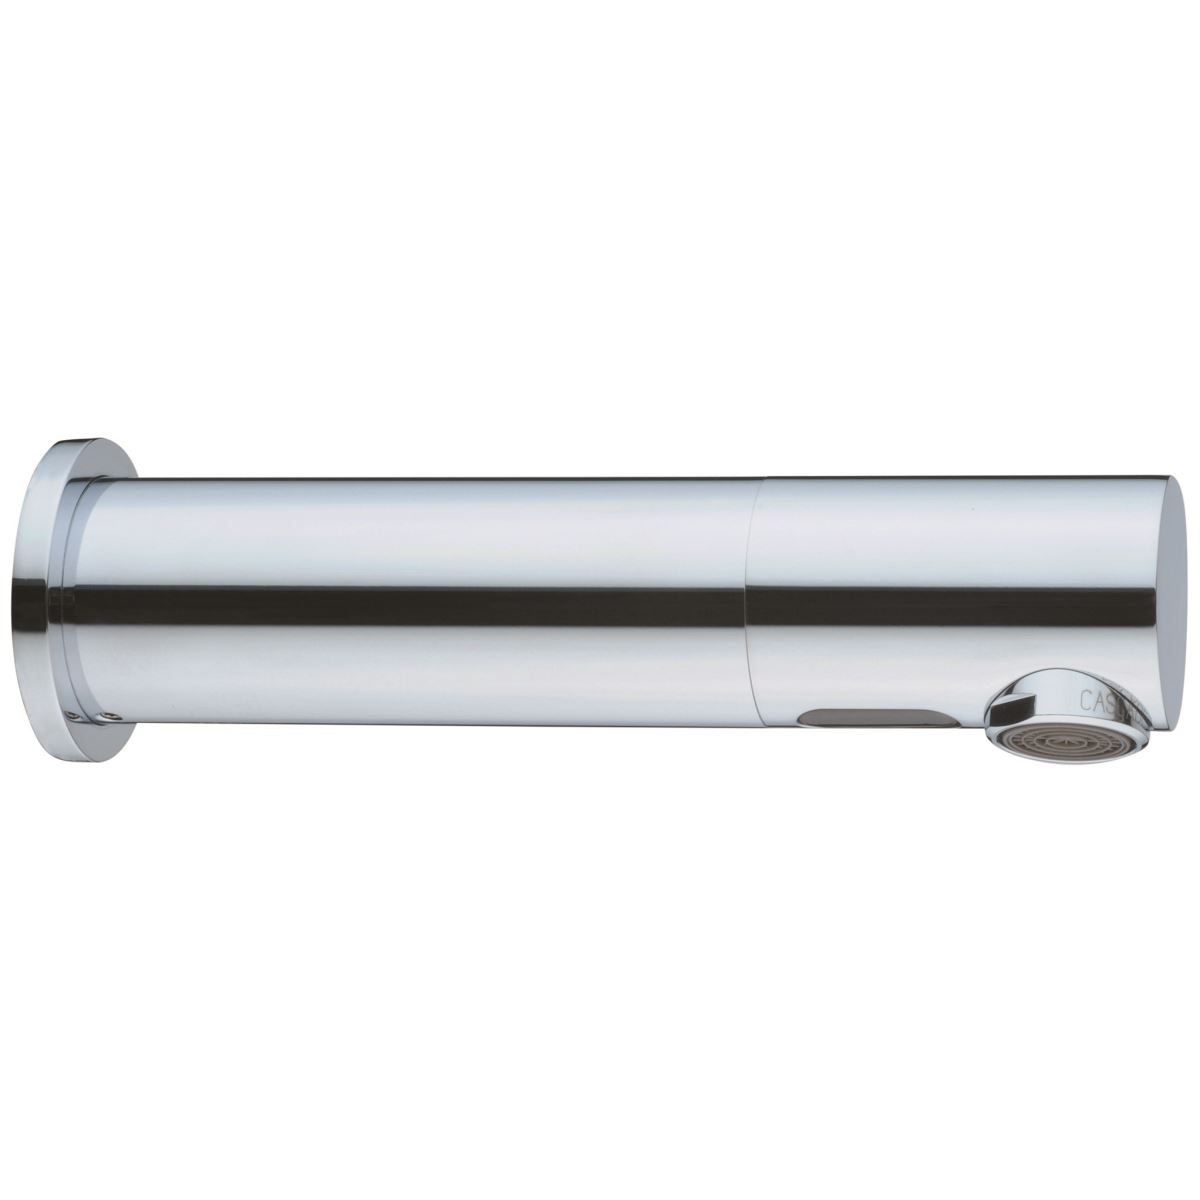 Aquatech Built-in Photocell Basin Mixer (Mains – Double Water Inlet)